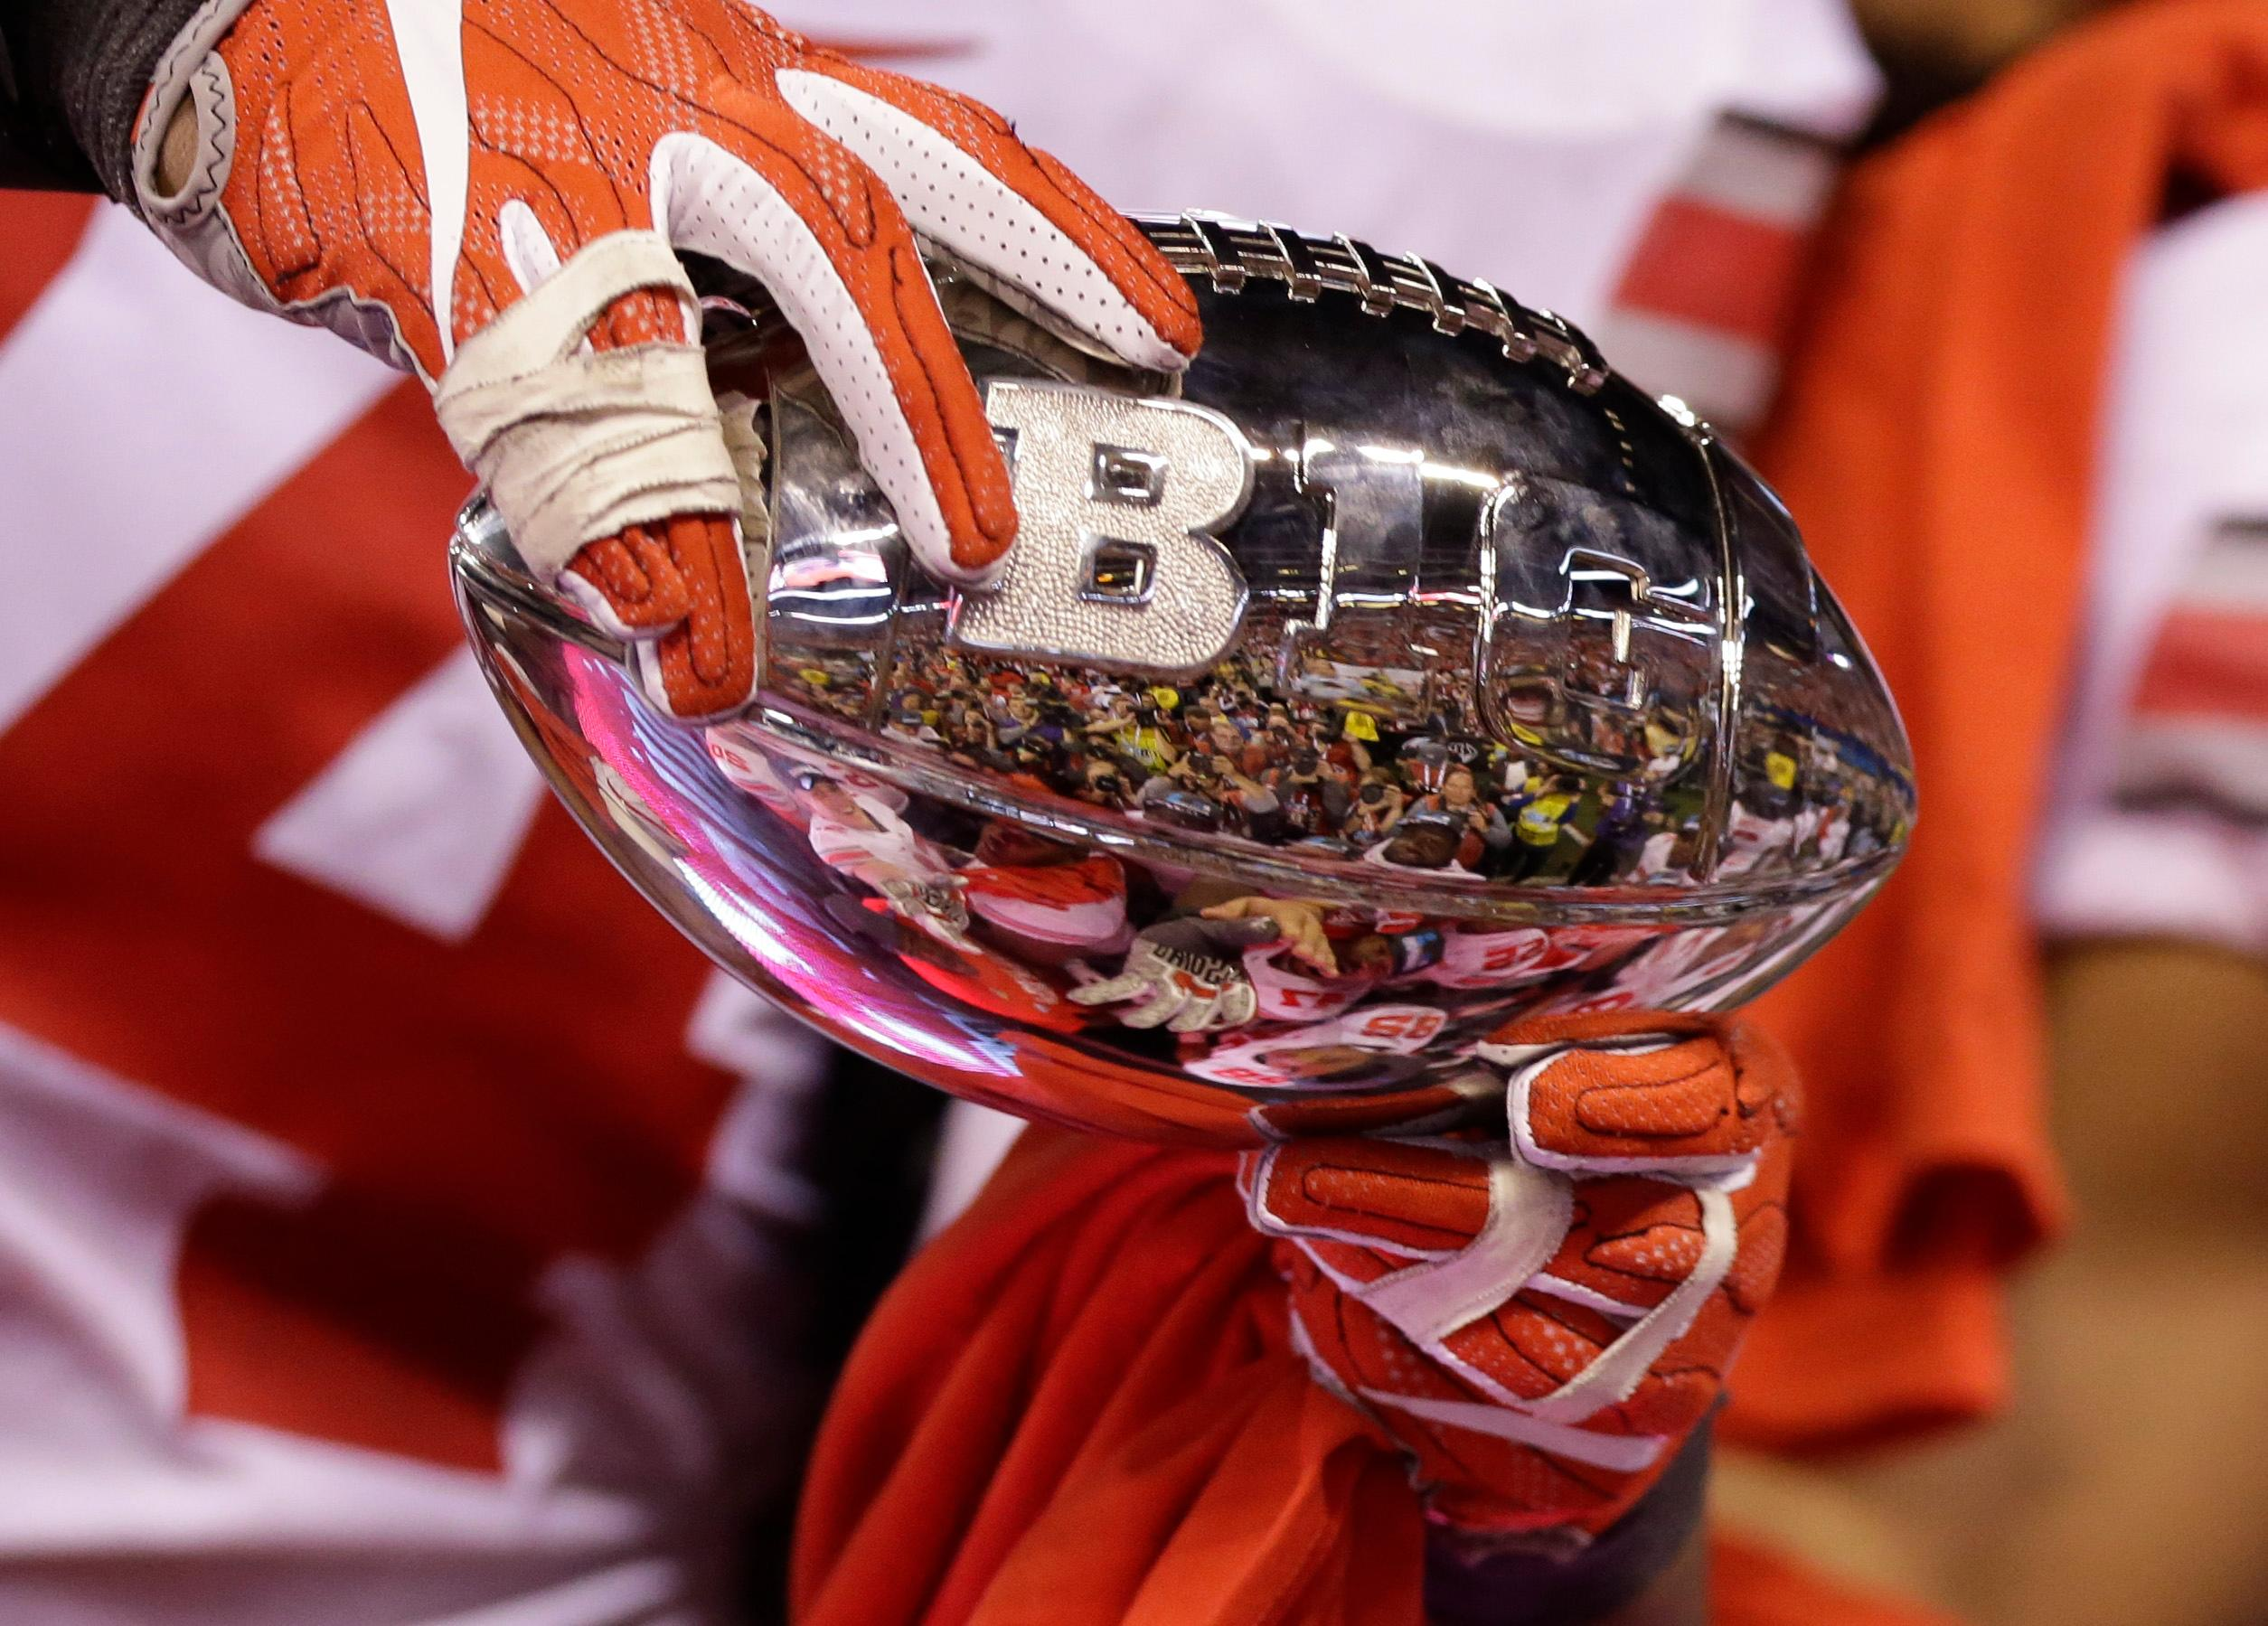 Ohio State players hold the championship trophy following the Big Ten championship NCAA college football game against Wisconsin, early Sunday, Dec. 3, 2017, in Indianapolis. Ohio State won 27-21. (AP Photo/AJ Mast)